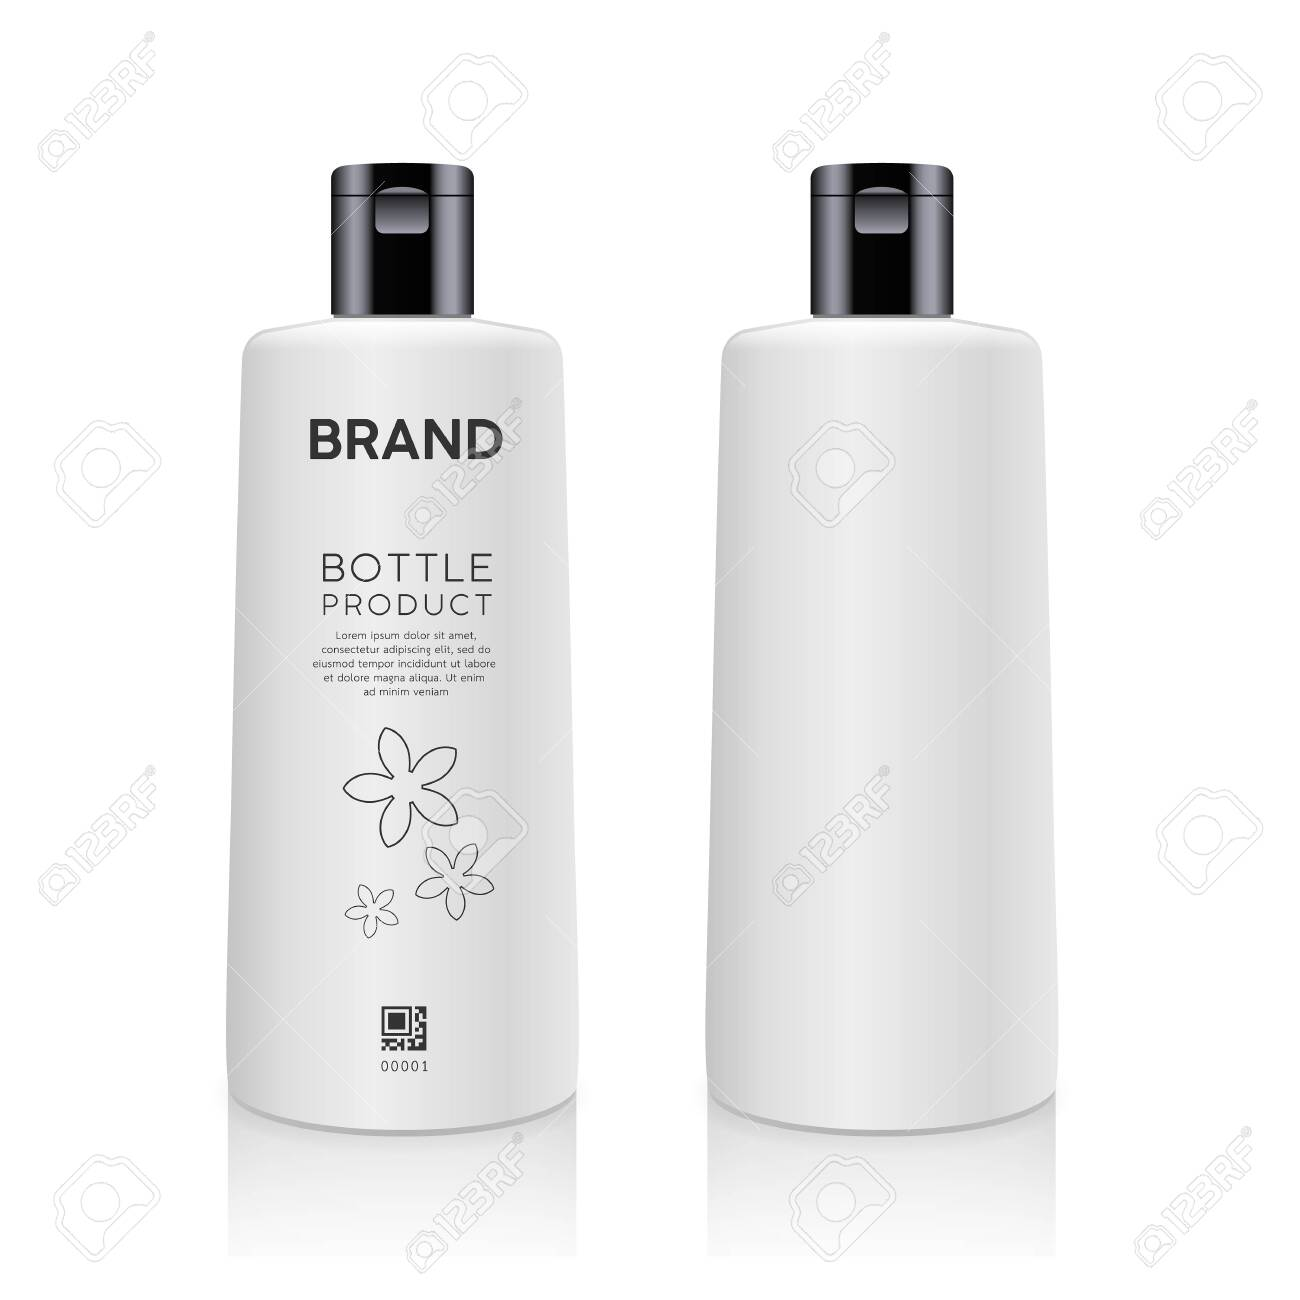 Bottle white products mockup design collection isolated on whtie background vector illustration - 149373994